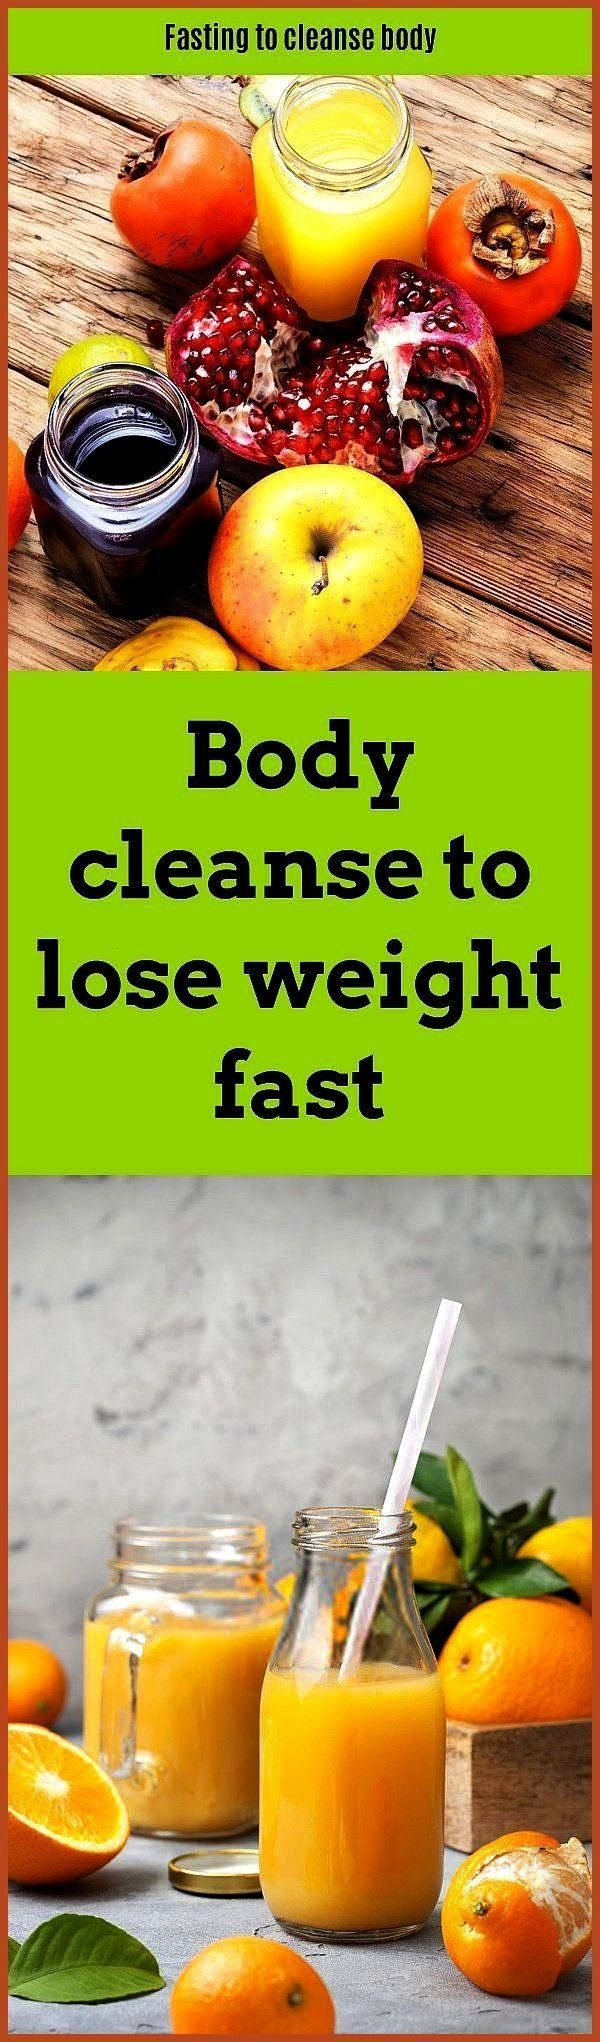 #getting #fitness #cleanse #weight #toxins #hellip - ,  #CLEANSE #detoxbodytoxins #Fitness #hellip #...